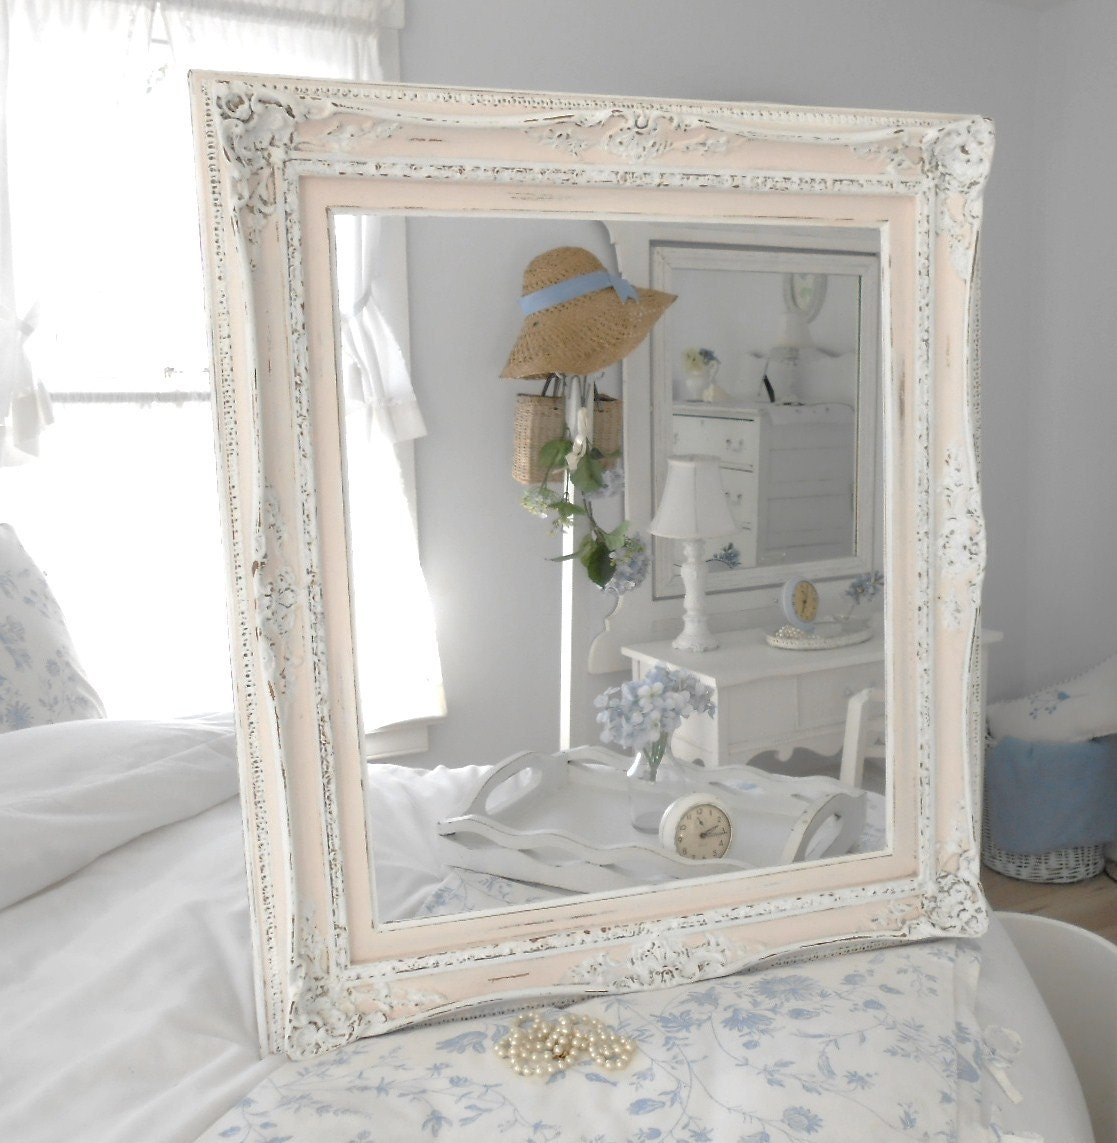 Frame shabby chic furniture home decor for mirror or art - Deco shabby chic pas cher ...